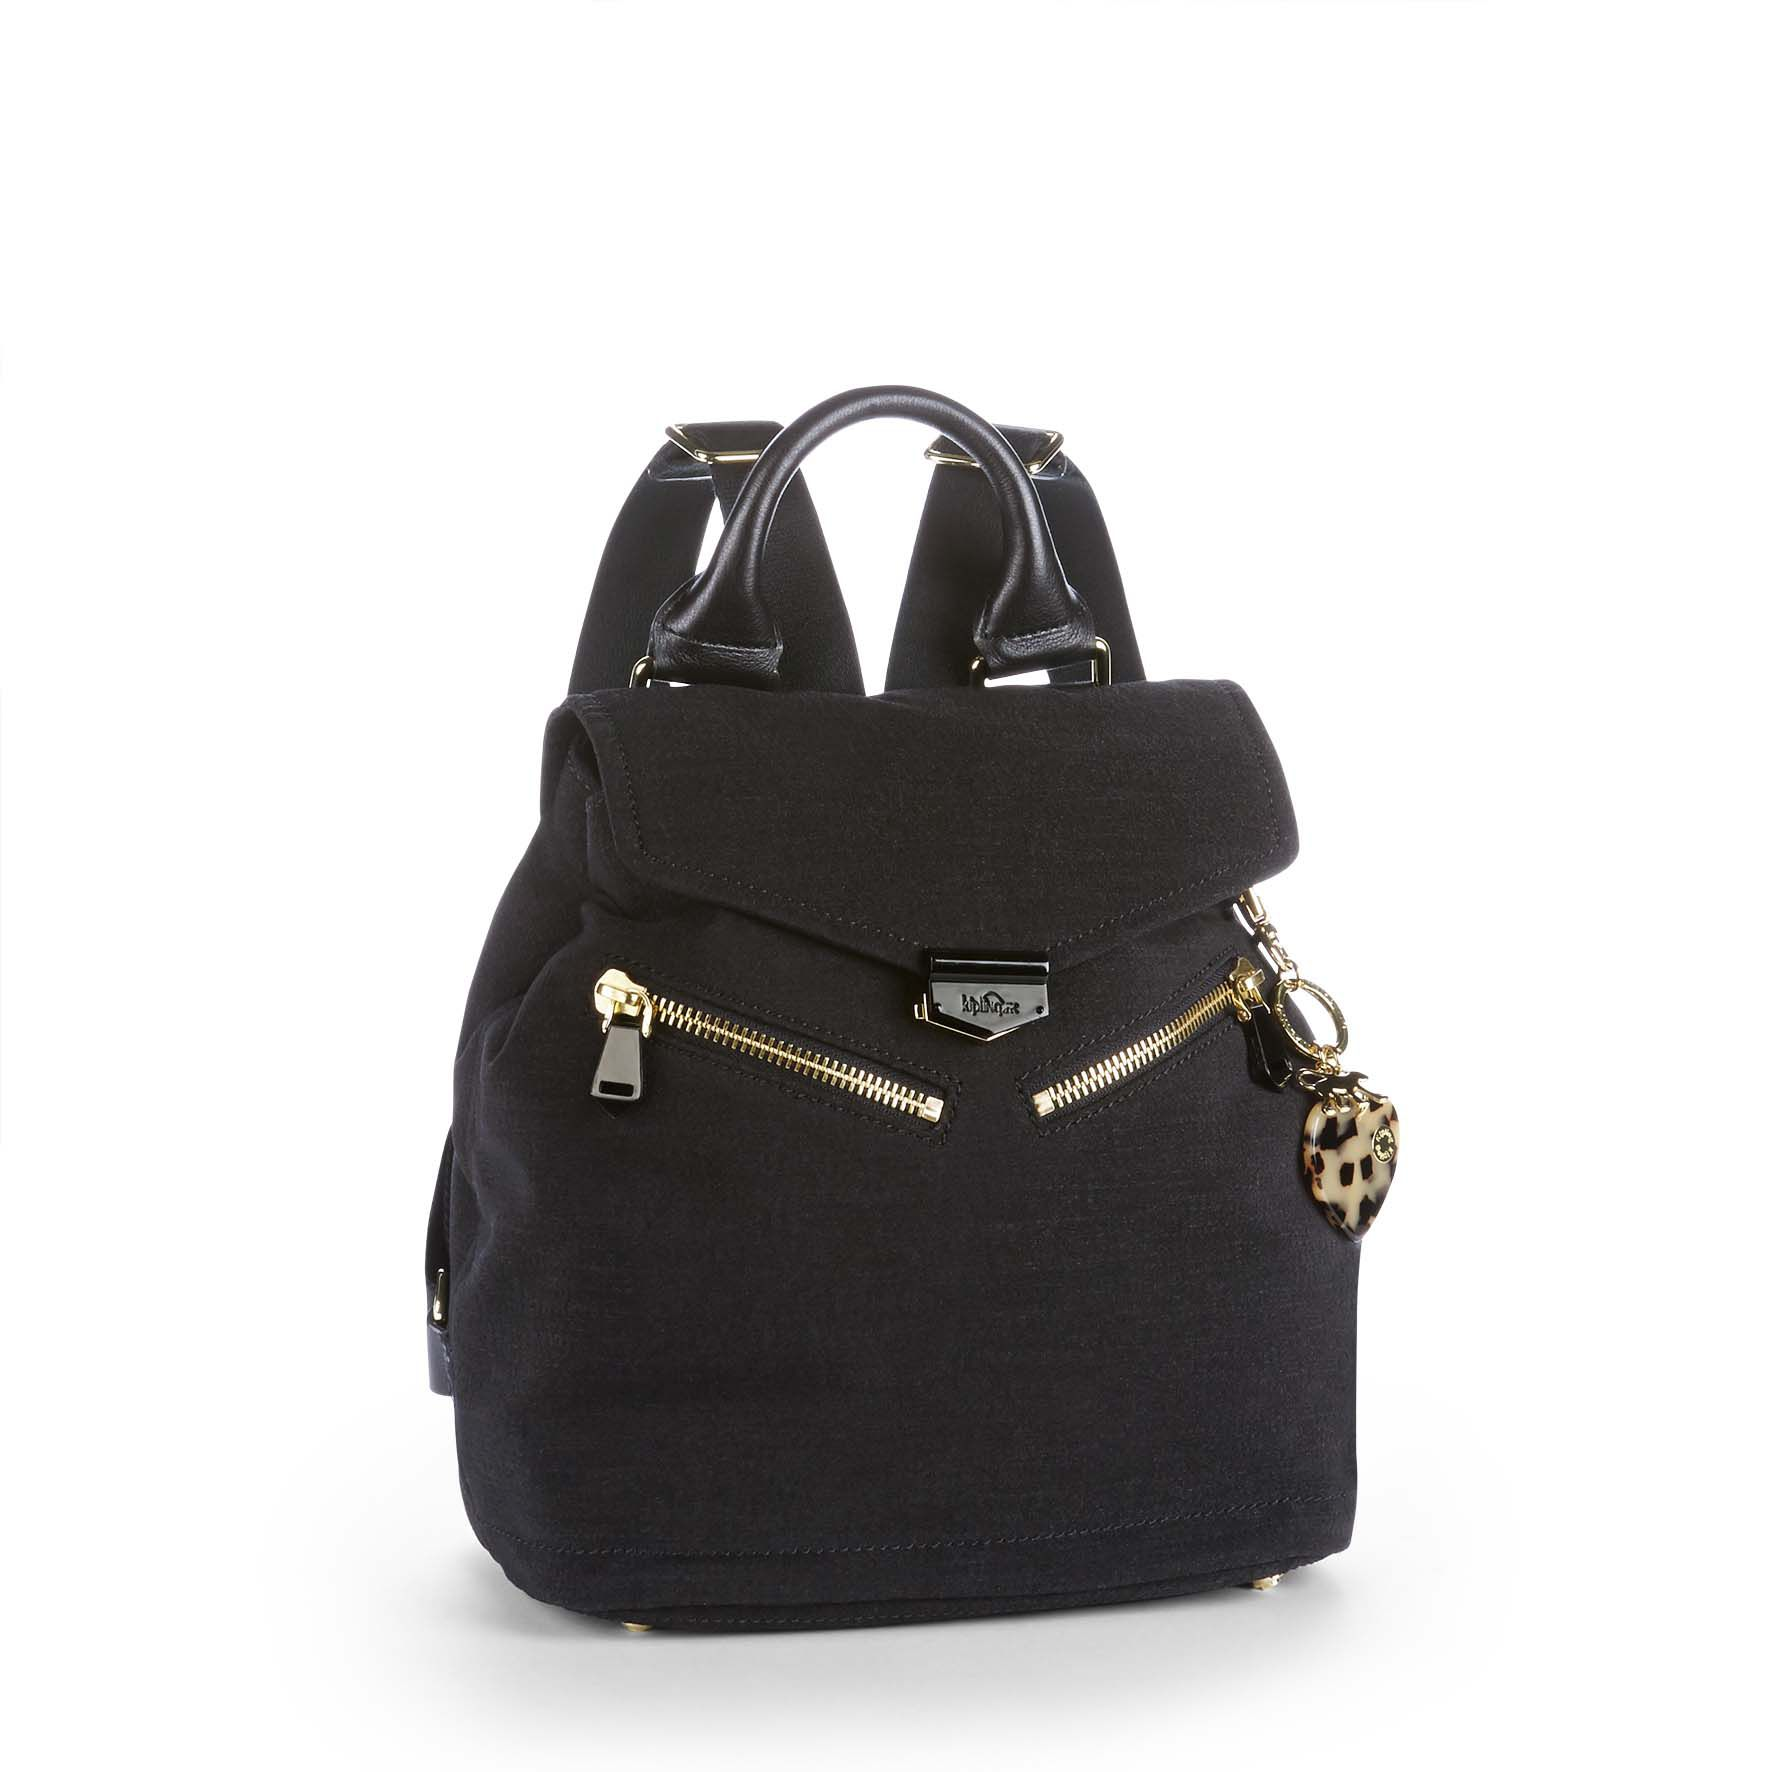 Kipling On a roll backpack Black